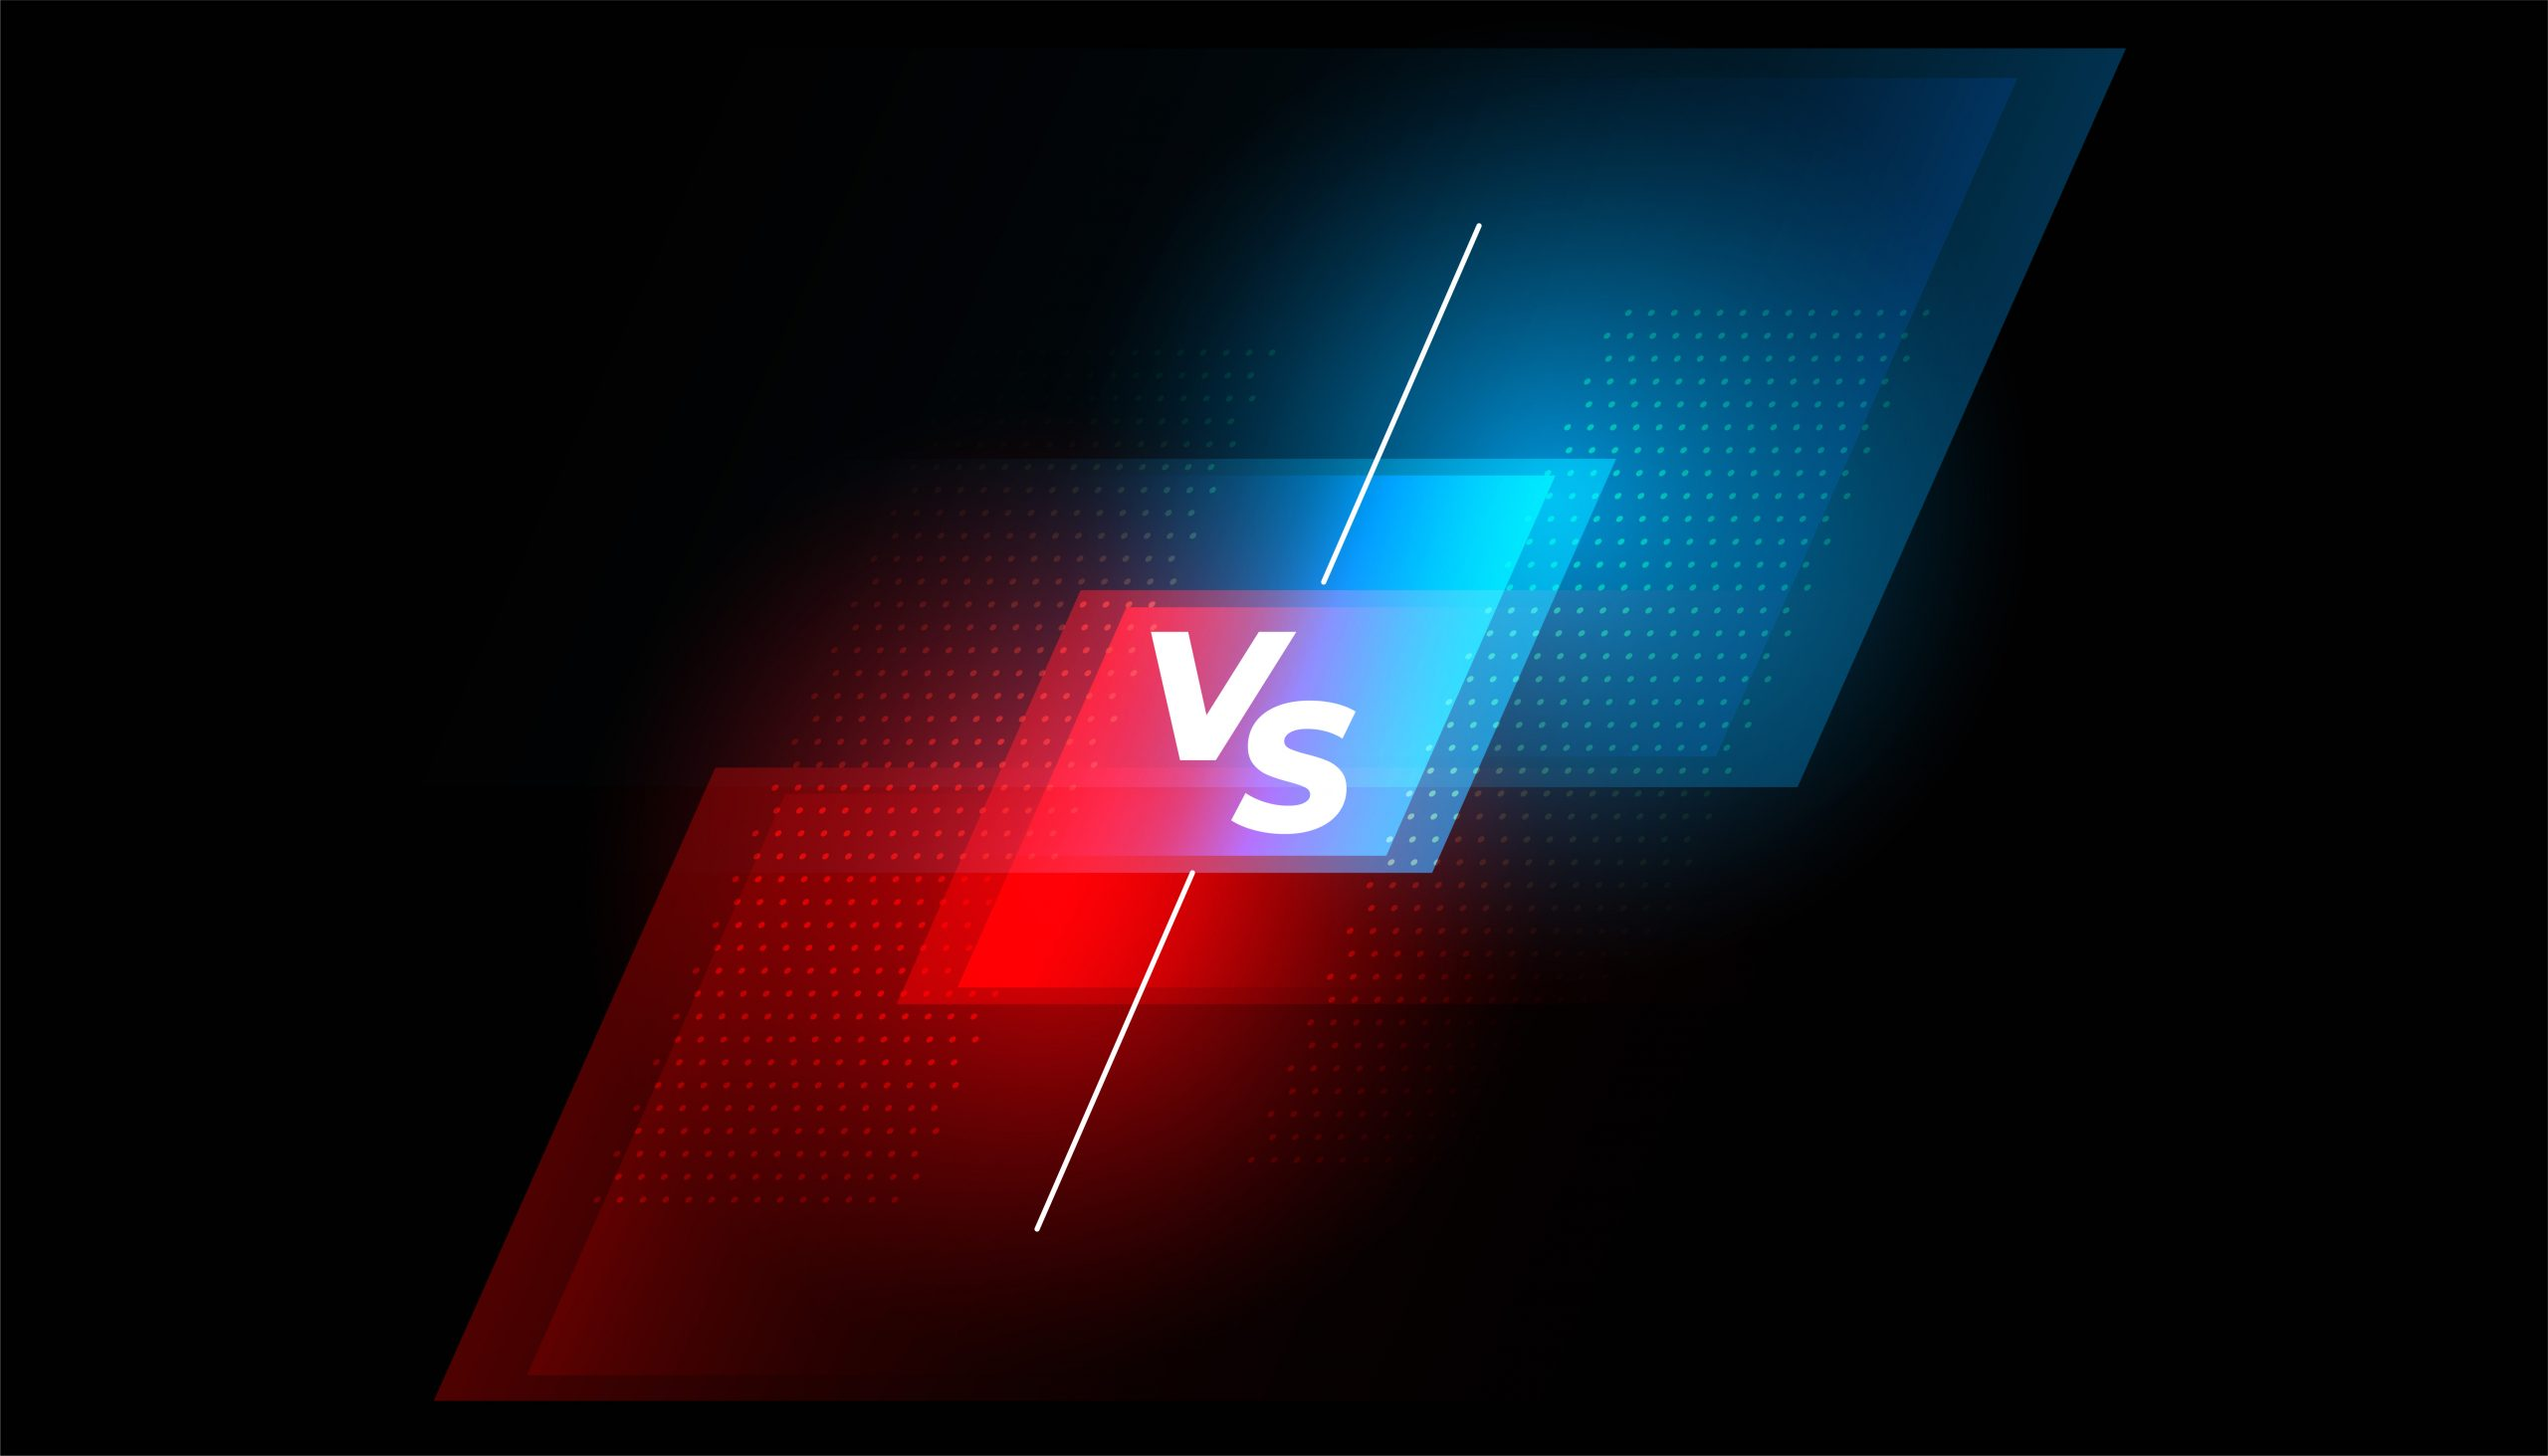 versus vs battle screen red and blue background